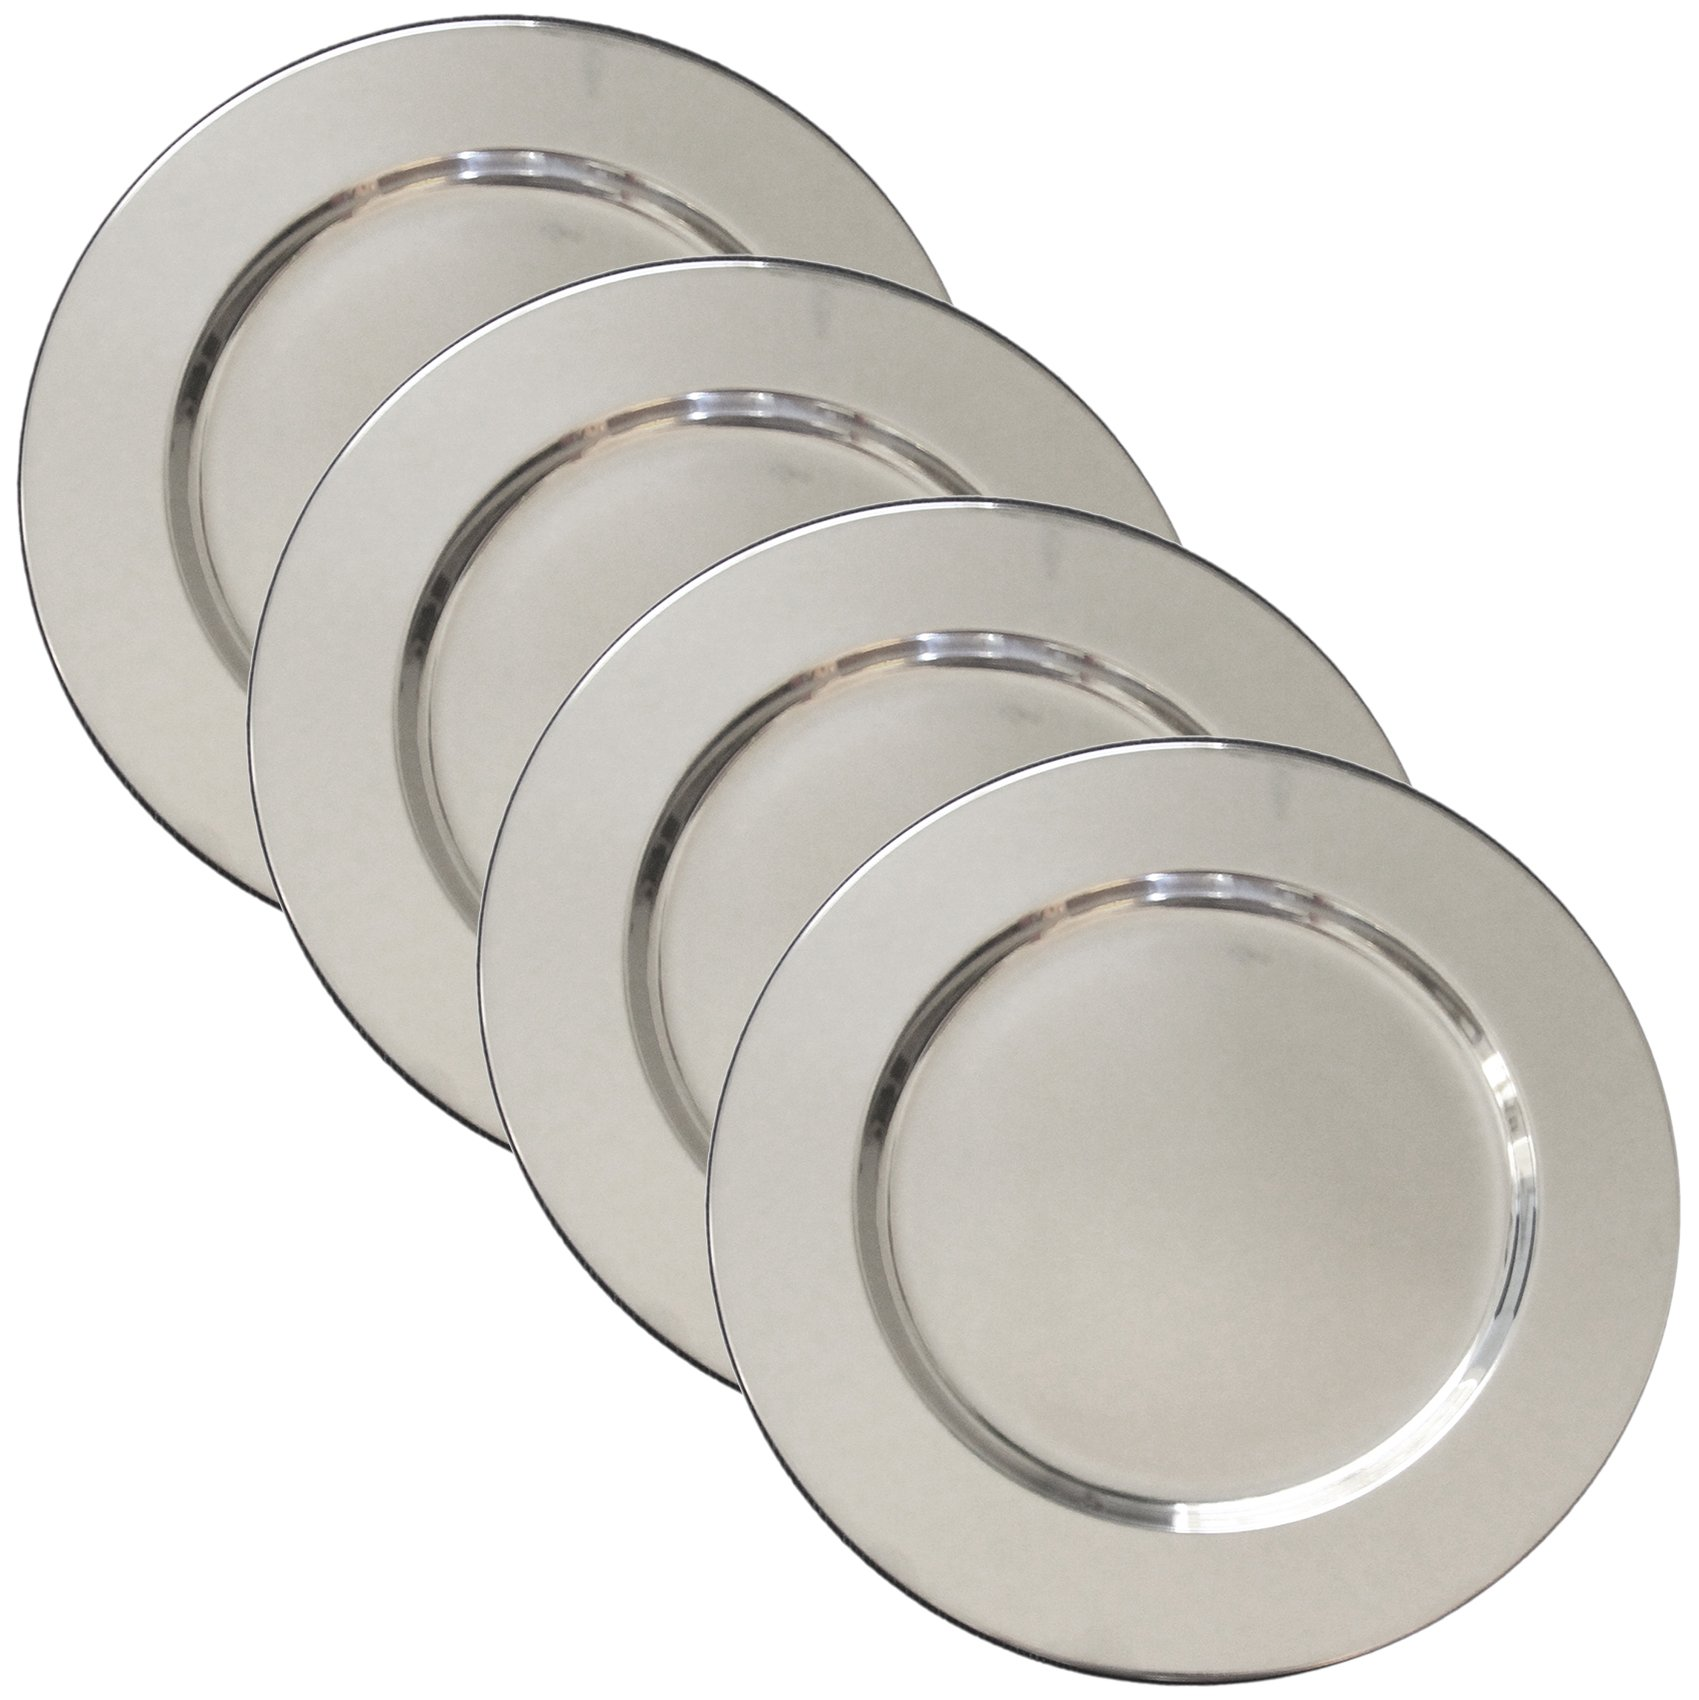 """Set of 4 Stainless Steel Charger Plates - Handmade 12"""" Service Plates, Accent Plates, Decorative Tray & Hors d'oeuvre Tray"""